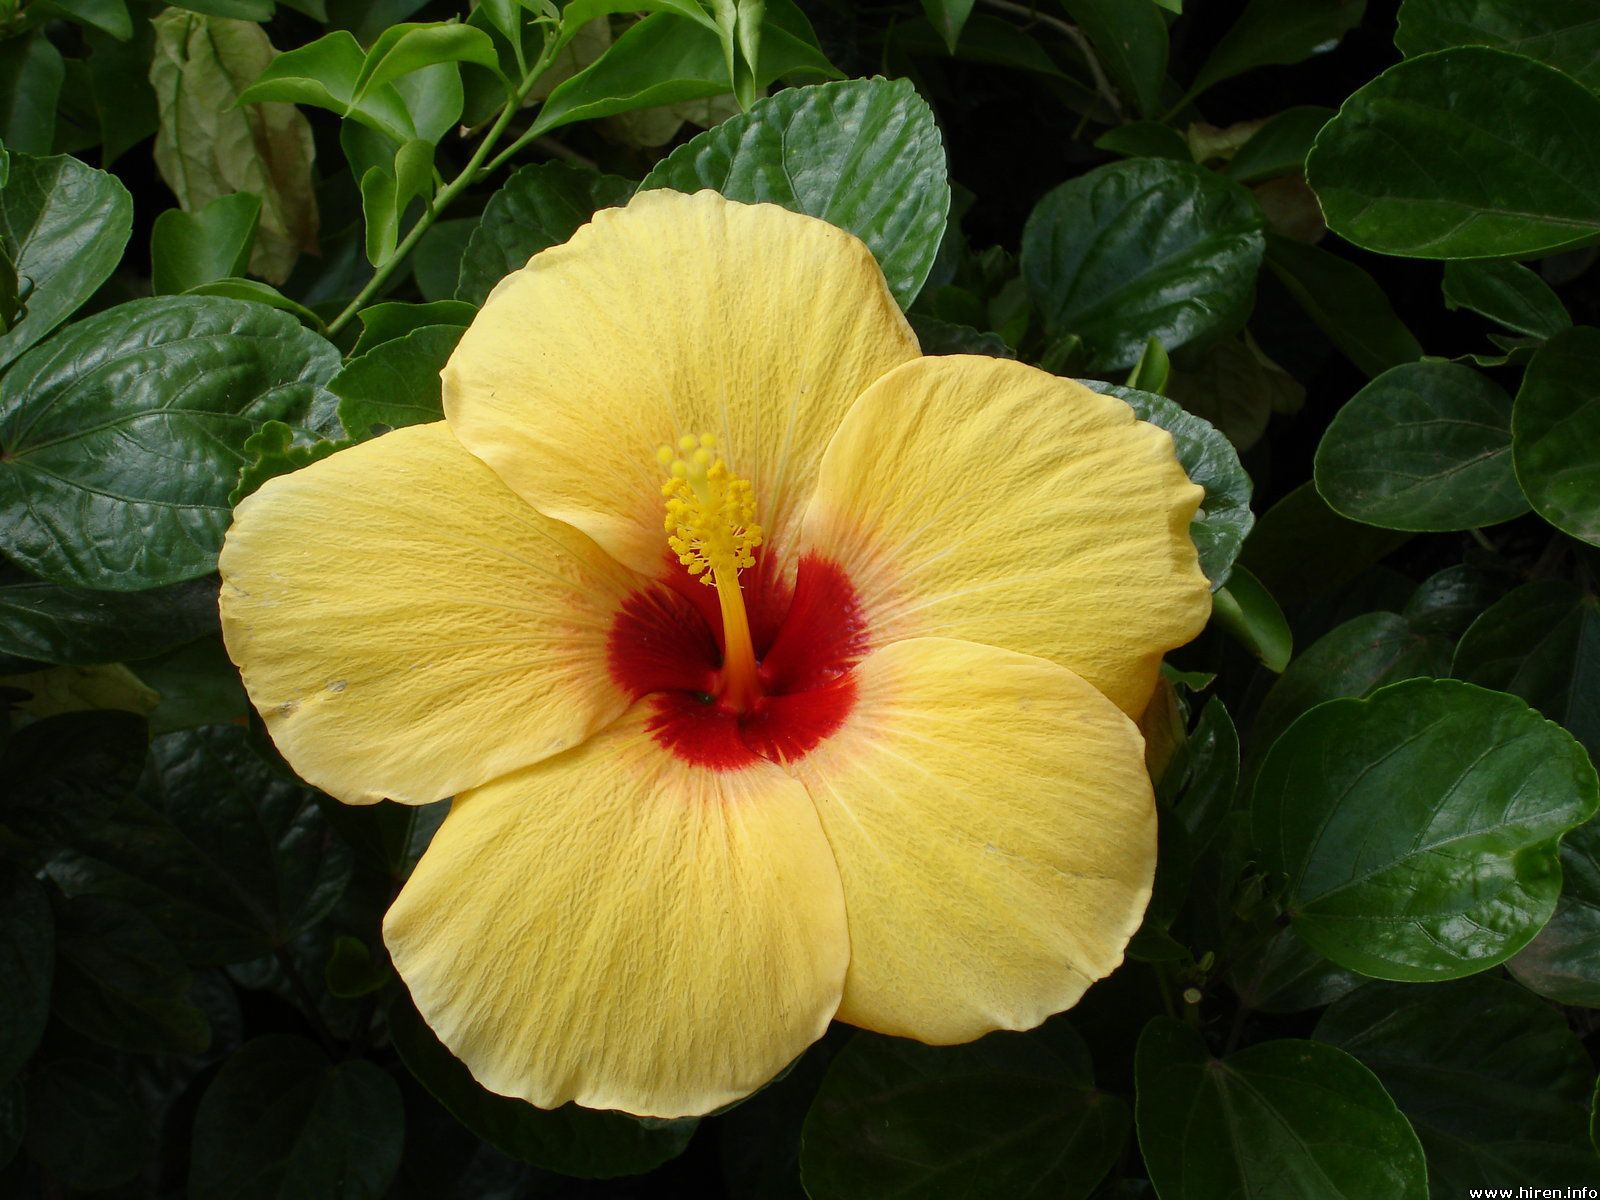 Pin by susan smith on tropical flowers | Exotic flowers